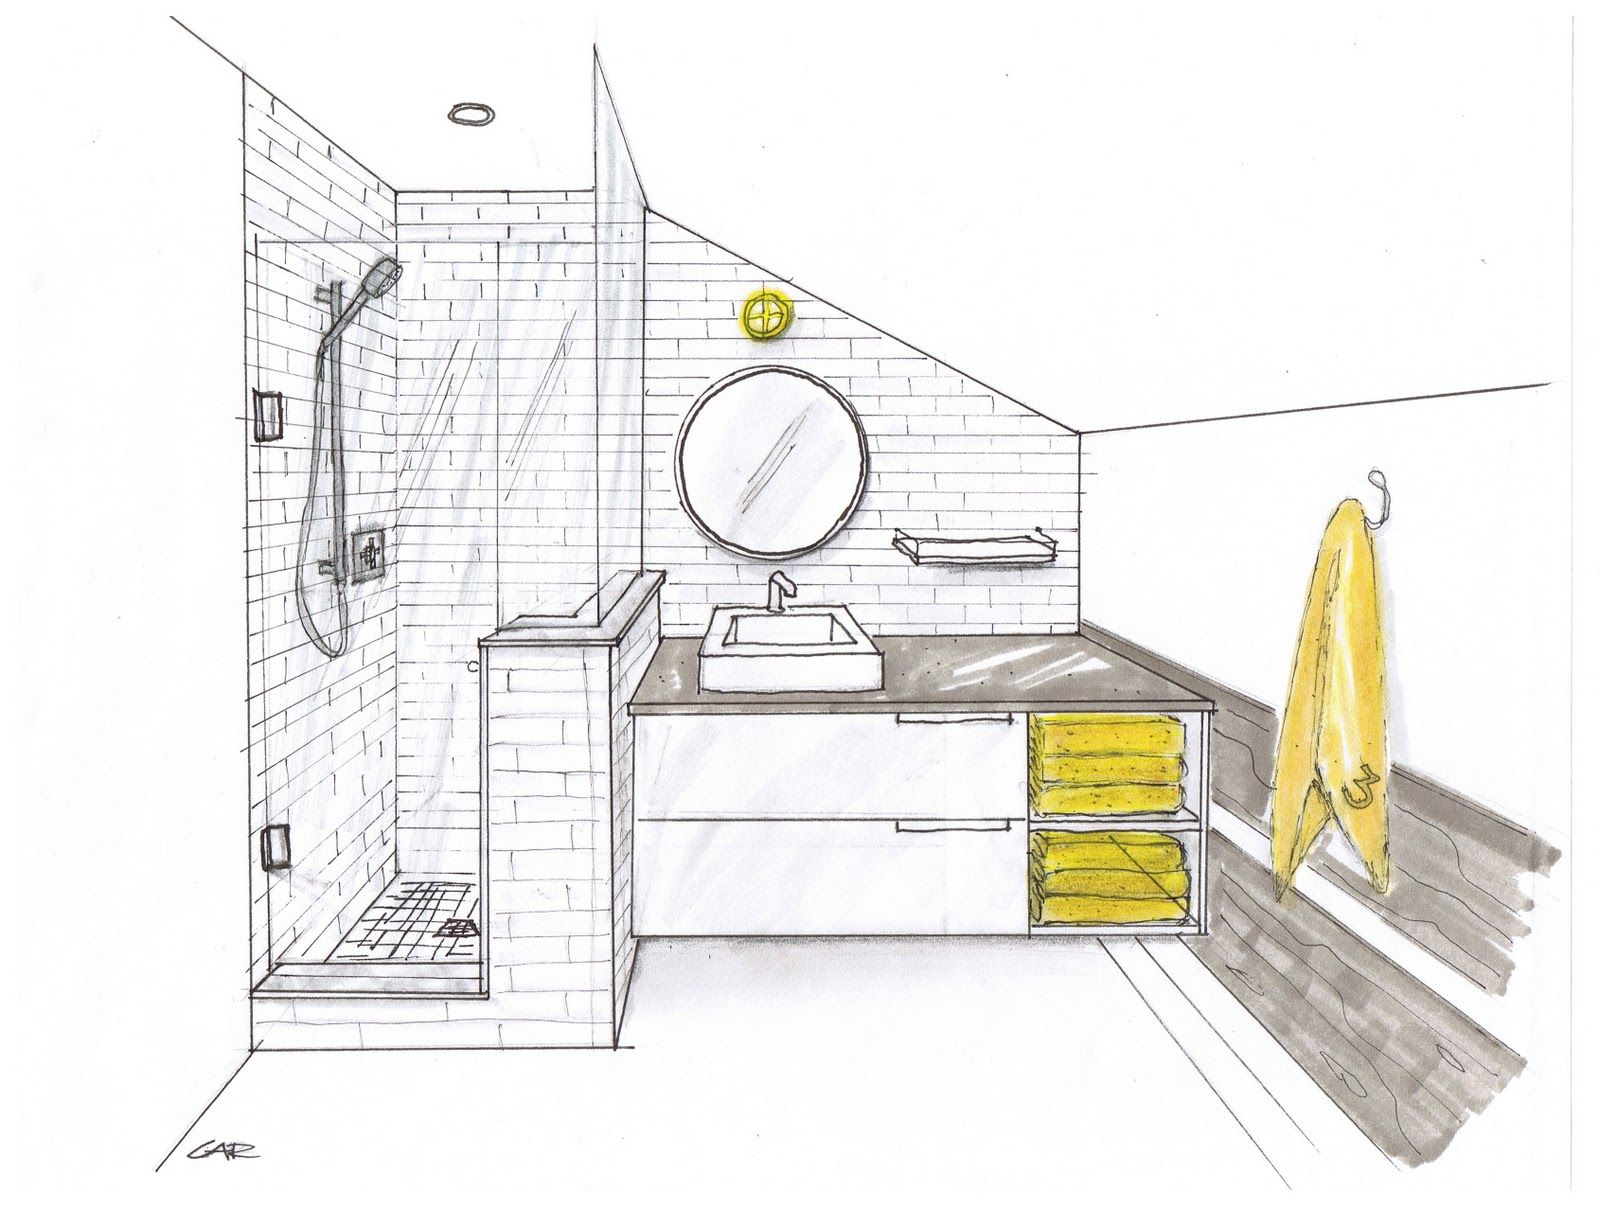 Bathroom drawing design - Bathroom Designs Stylish Bathroom Sketch Design Featuring Corner Glass Bathroom Vanities Towel Racks Ideas Using With Bathroom Planner Tool